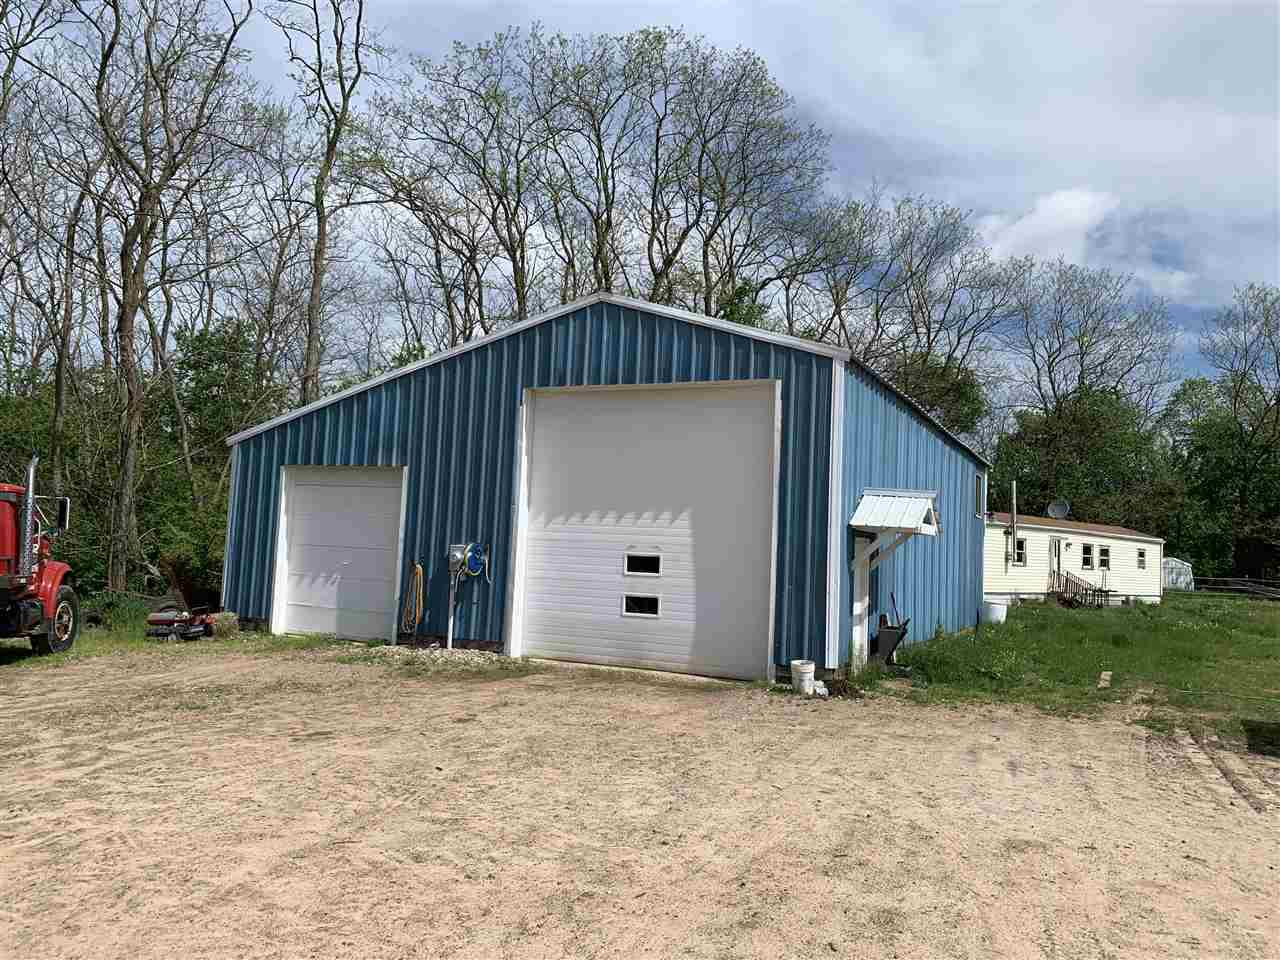 Nestled in the hills of Juneau County, approx. 26 acres with a multitude of uses! Bring the ATV's, horses and cattle or just relax in the country.  36'x40' heated shop with a parts room, upper loft, office and bathroom. Another shed used for hay/wood storage and a mobile home. Newer well & septic. Enjoy it just as it is or remove the mobile home and build your dream home!